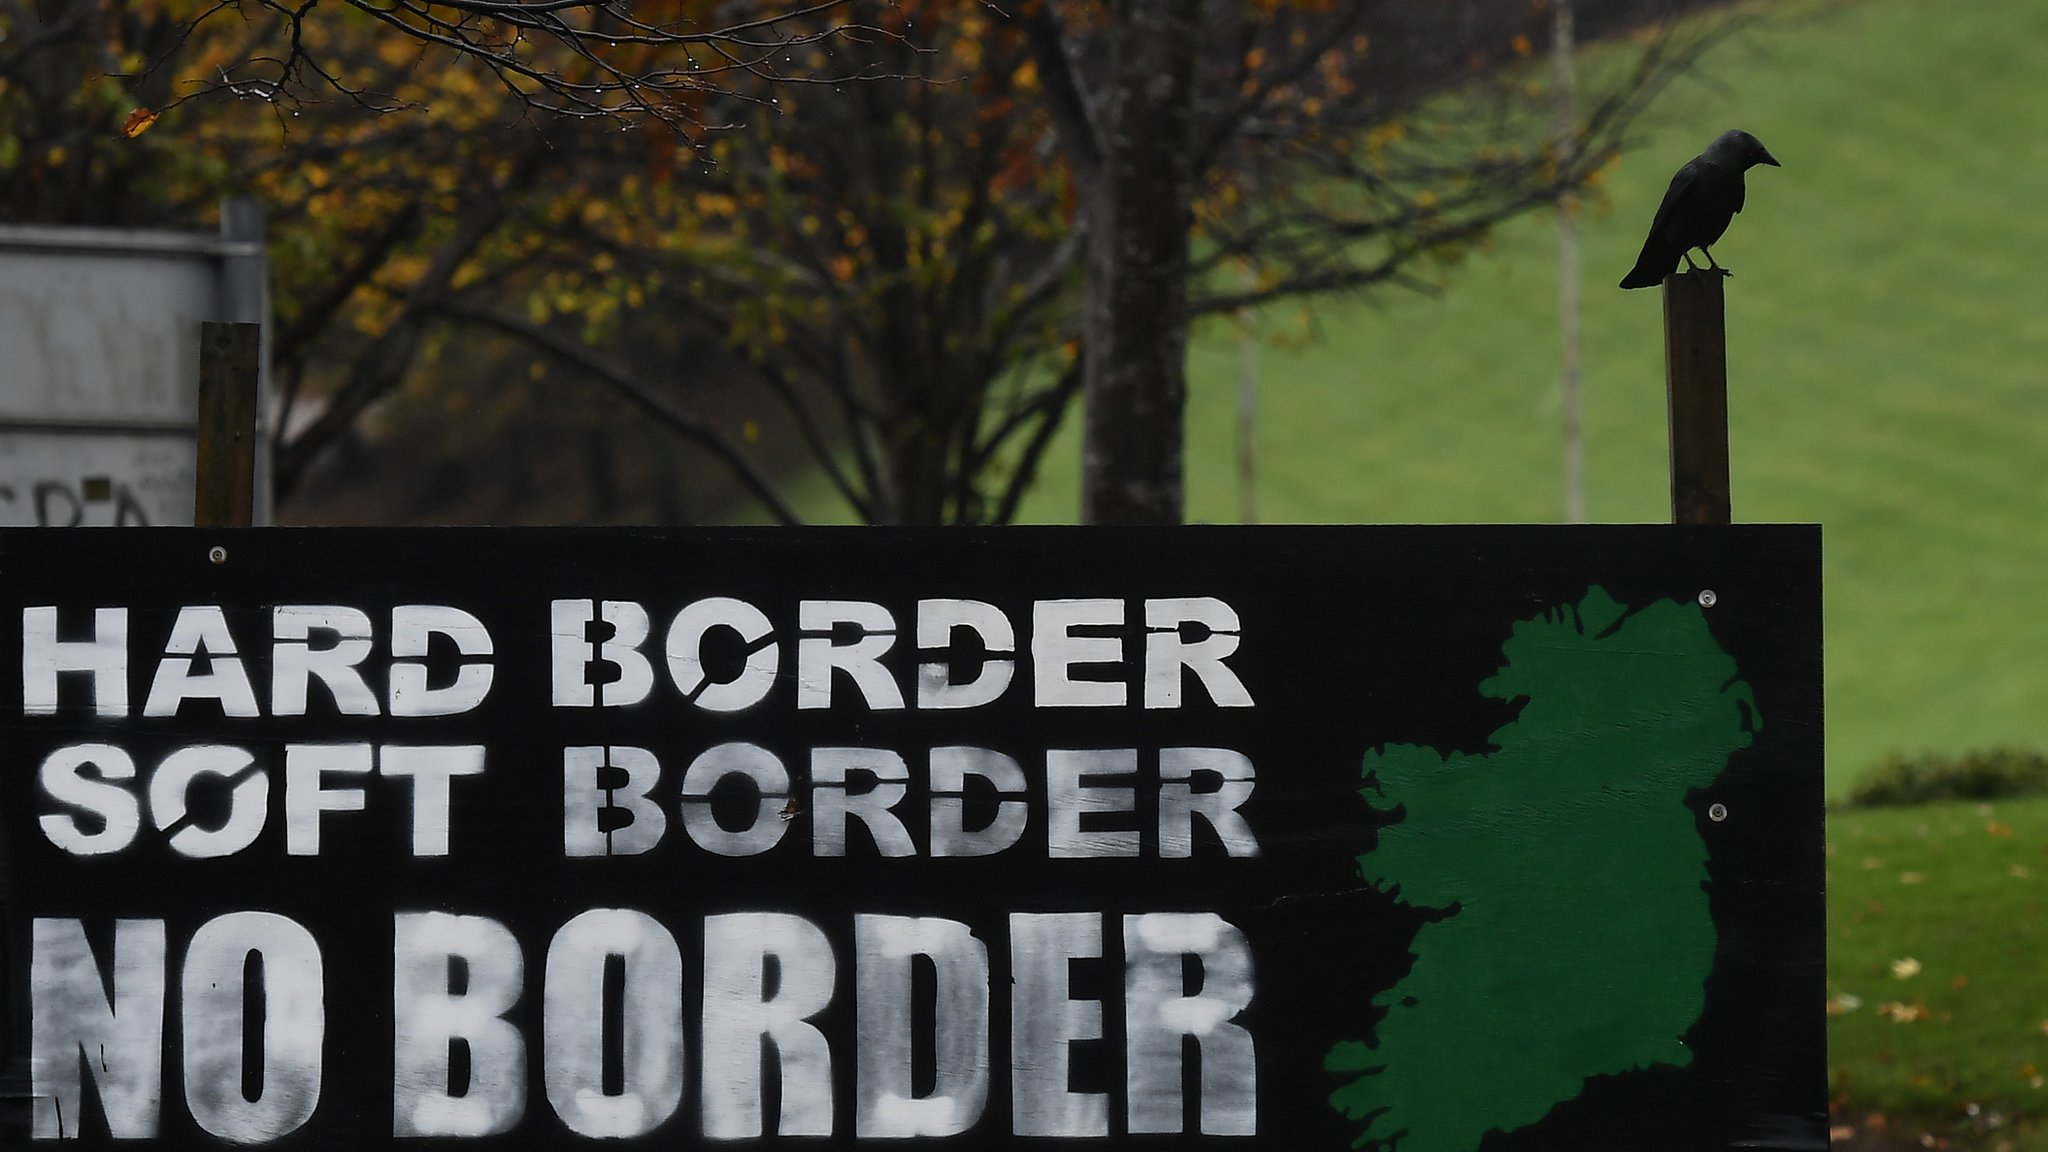 Brexit talks hit 'real problem' over Northern Ireland border